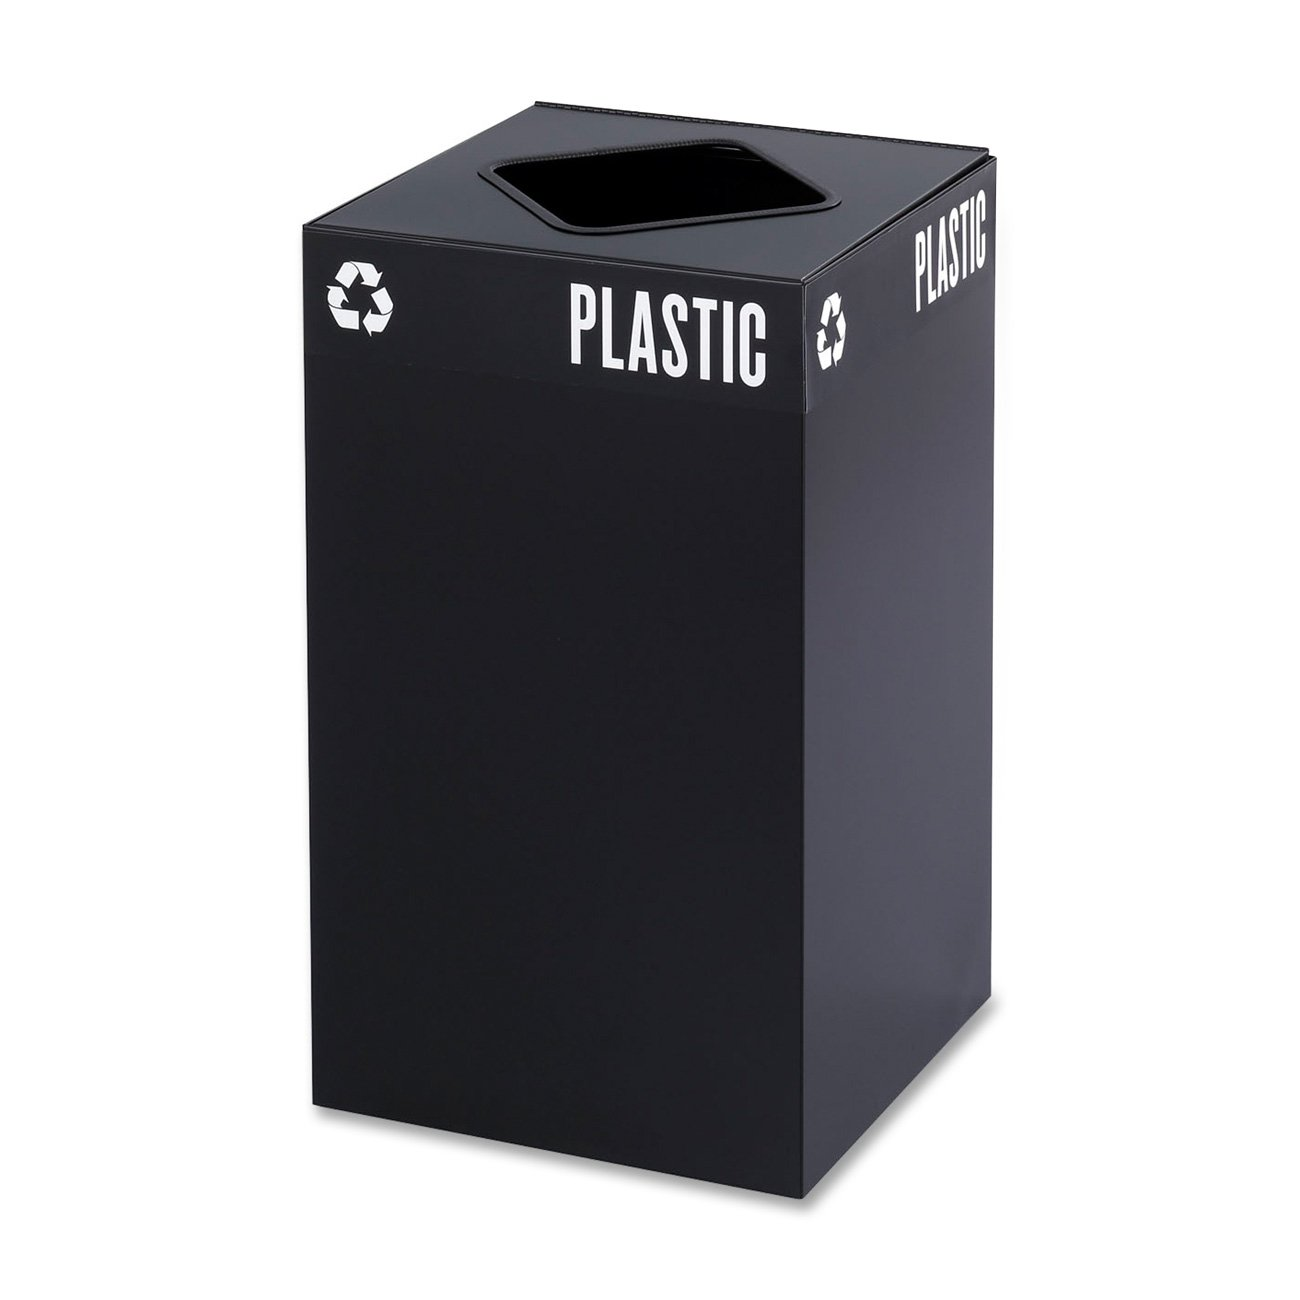 Safco Products 2981BL Public Square Recycling Trash Can Base, 25-Gallon, (Top sold separately), Black by Safco Products